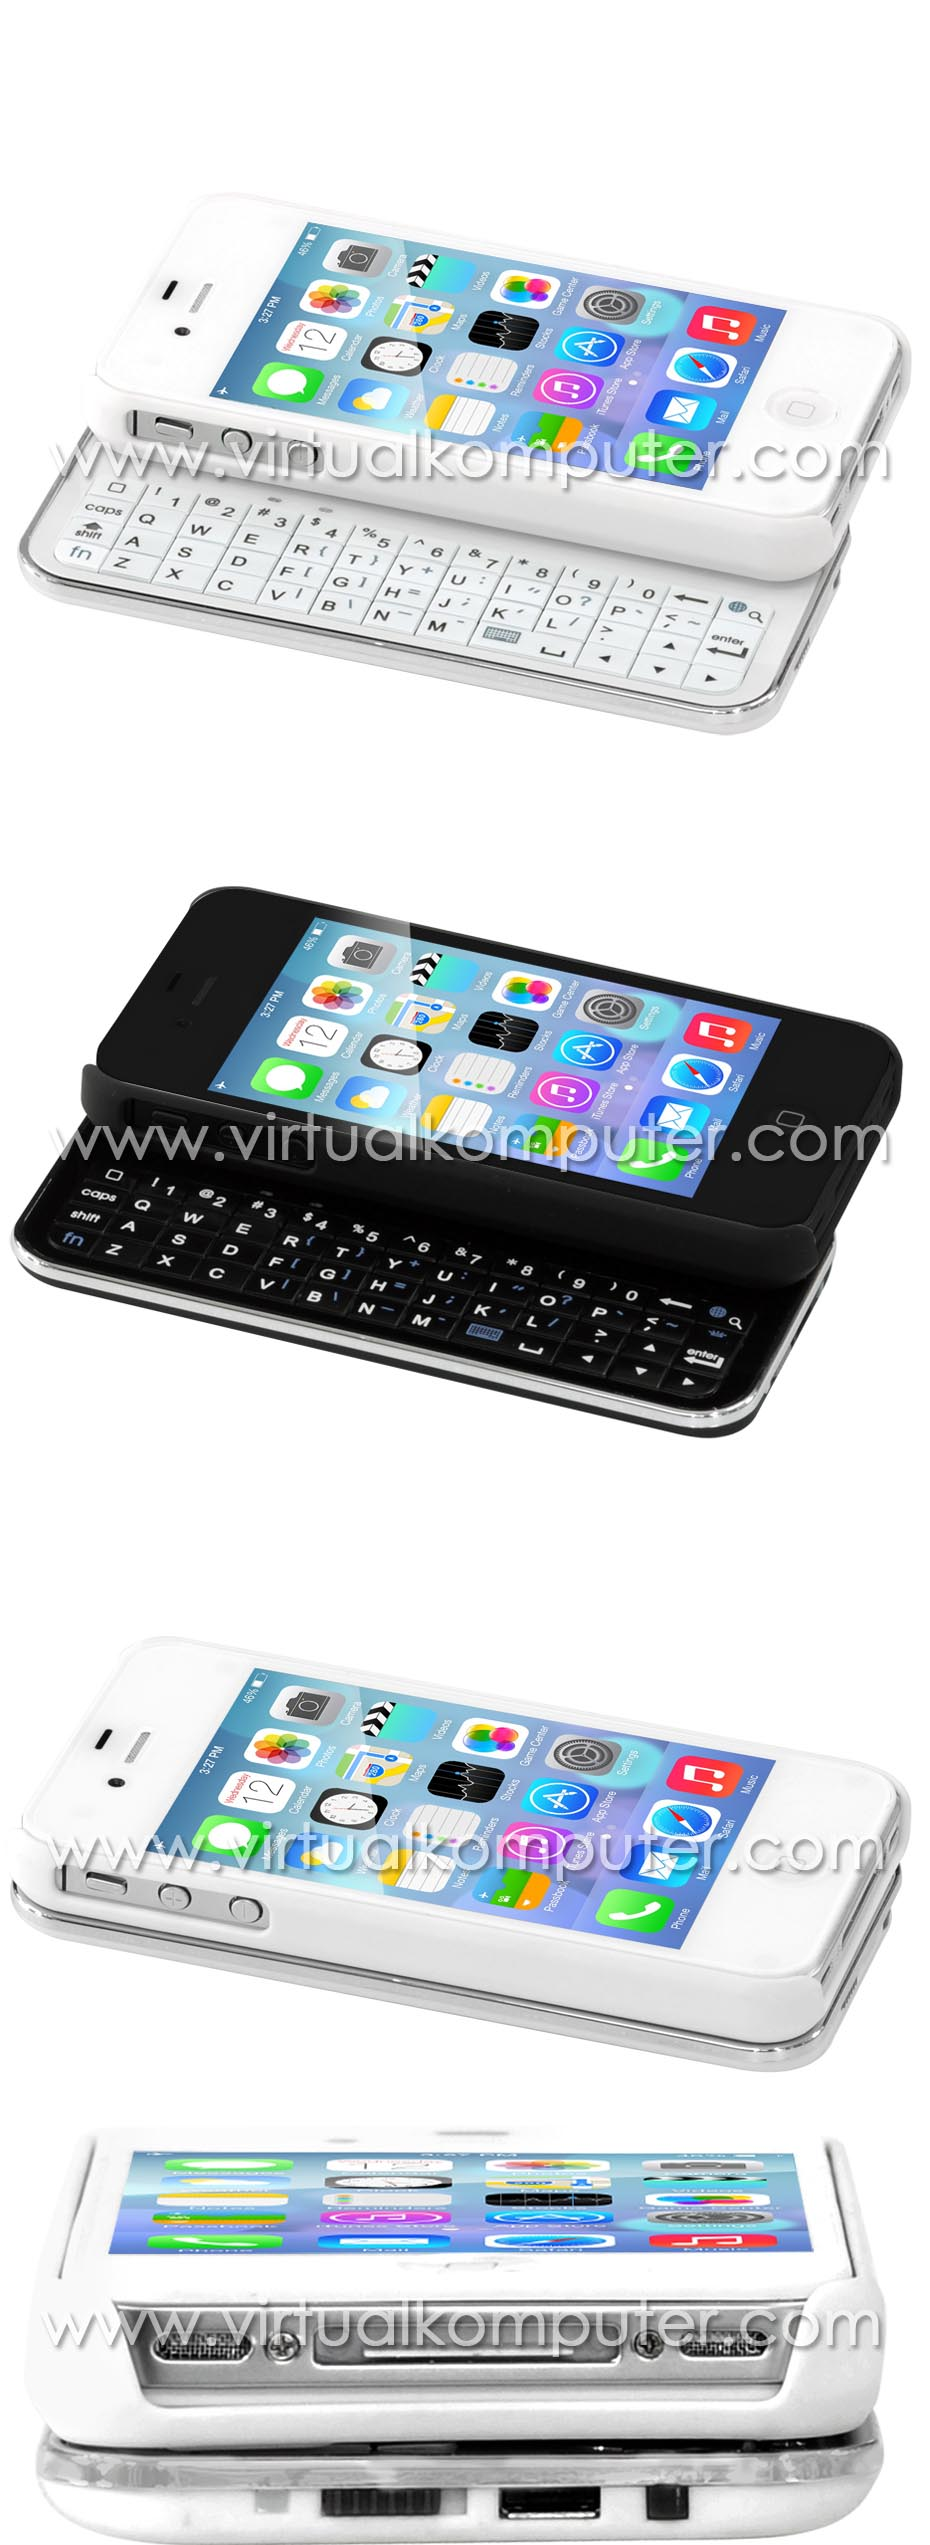 Keyboard Case for iPhone 4, 4S Overview